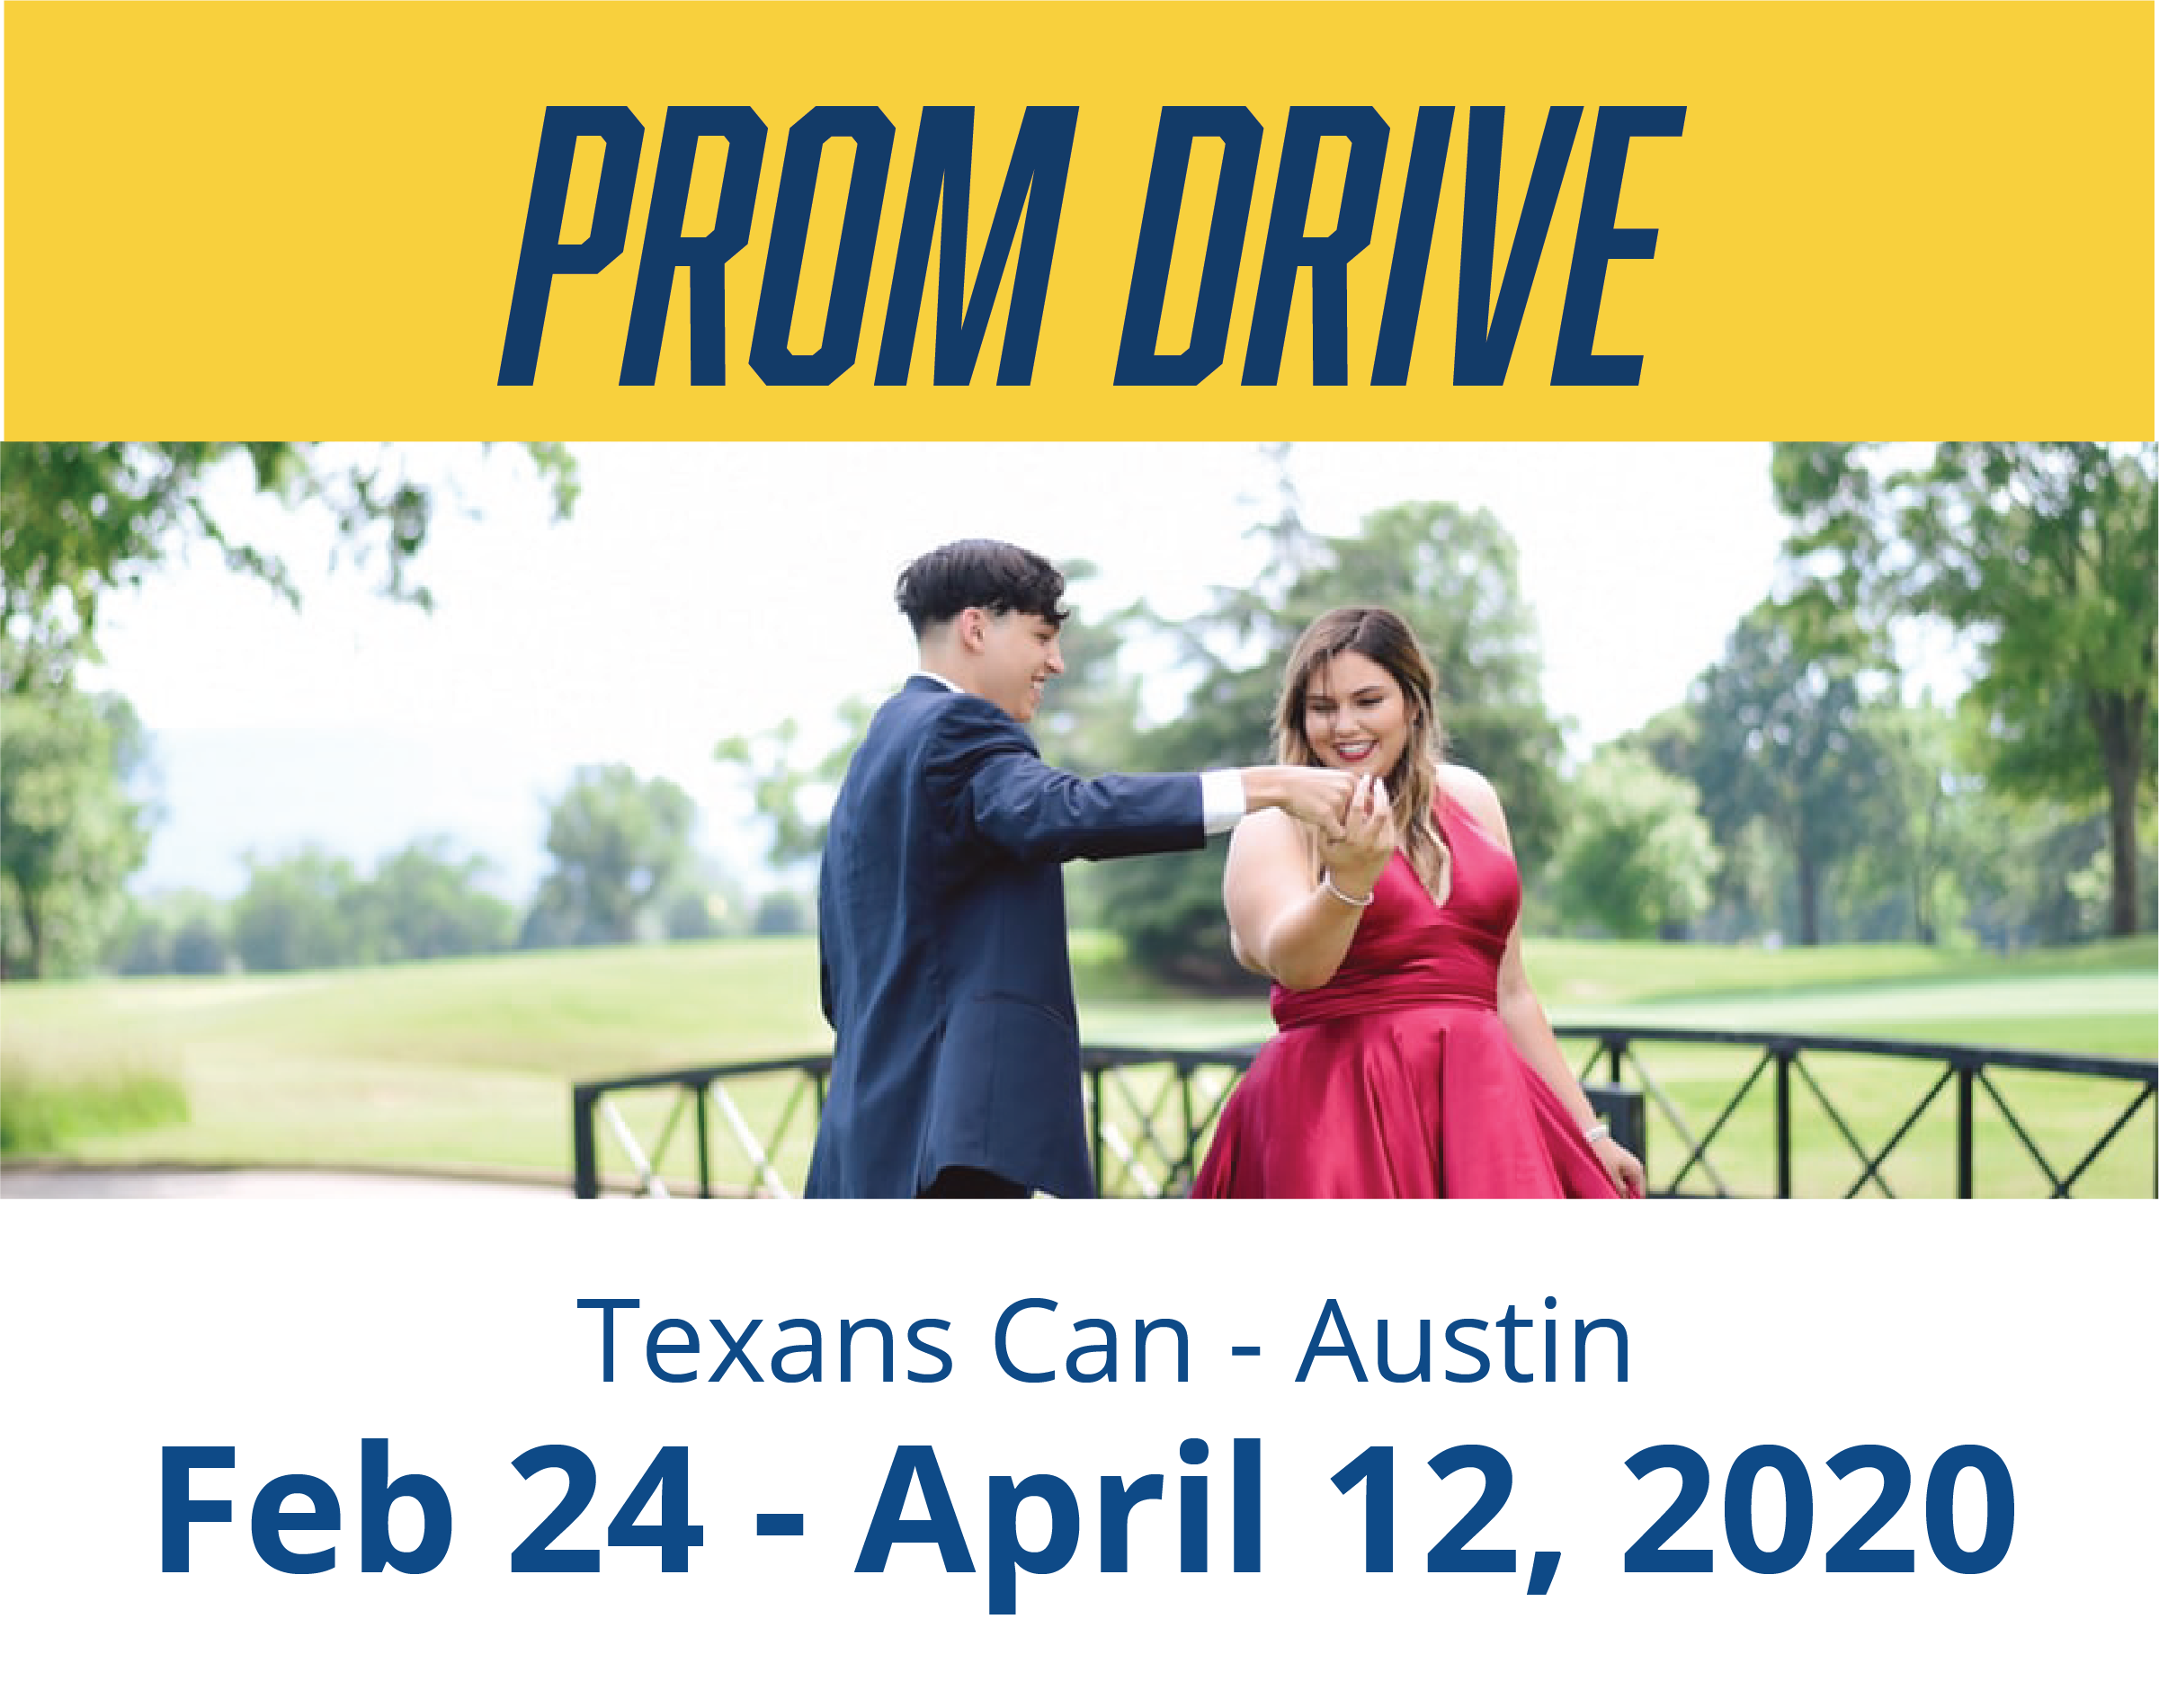 Texans Can - Austin: Prom Drive 2020